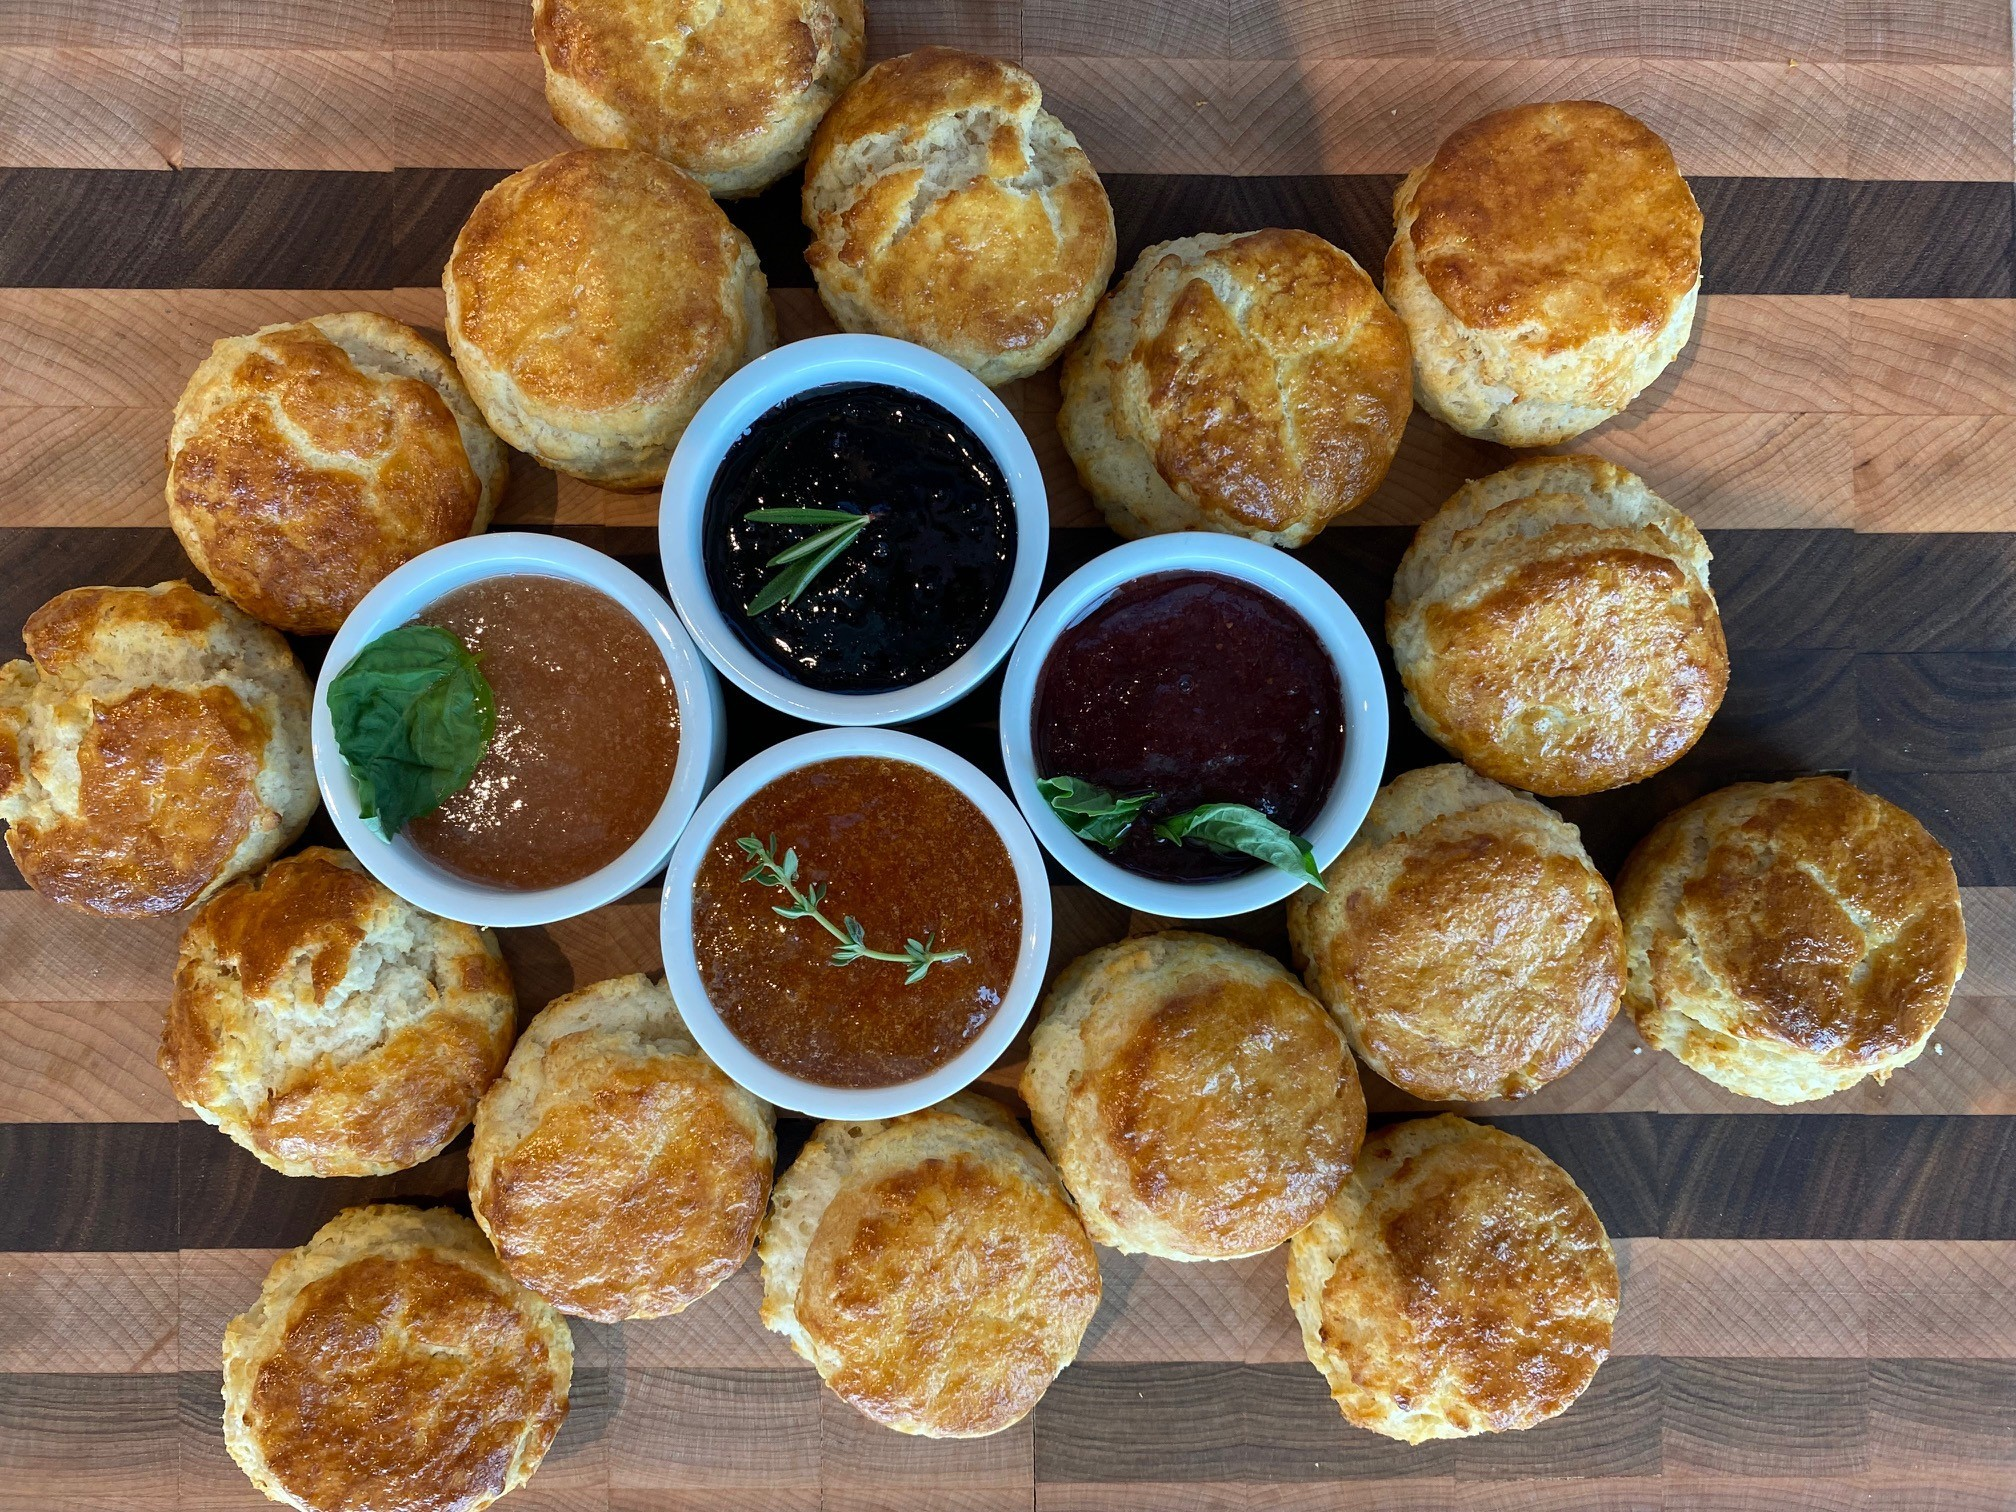 A tray filled with biscuits and jams